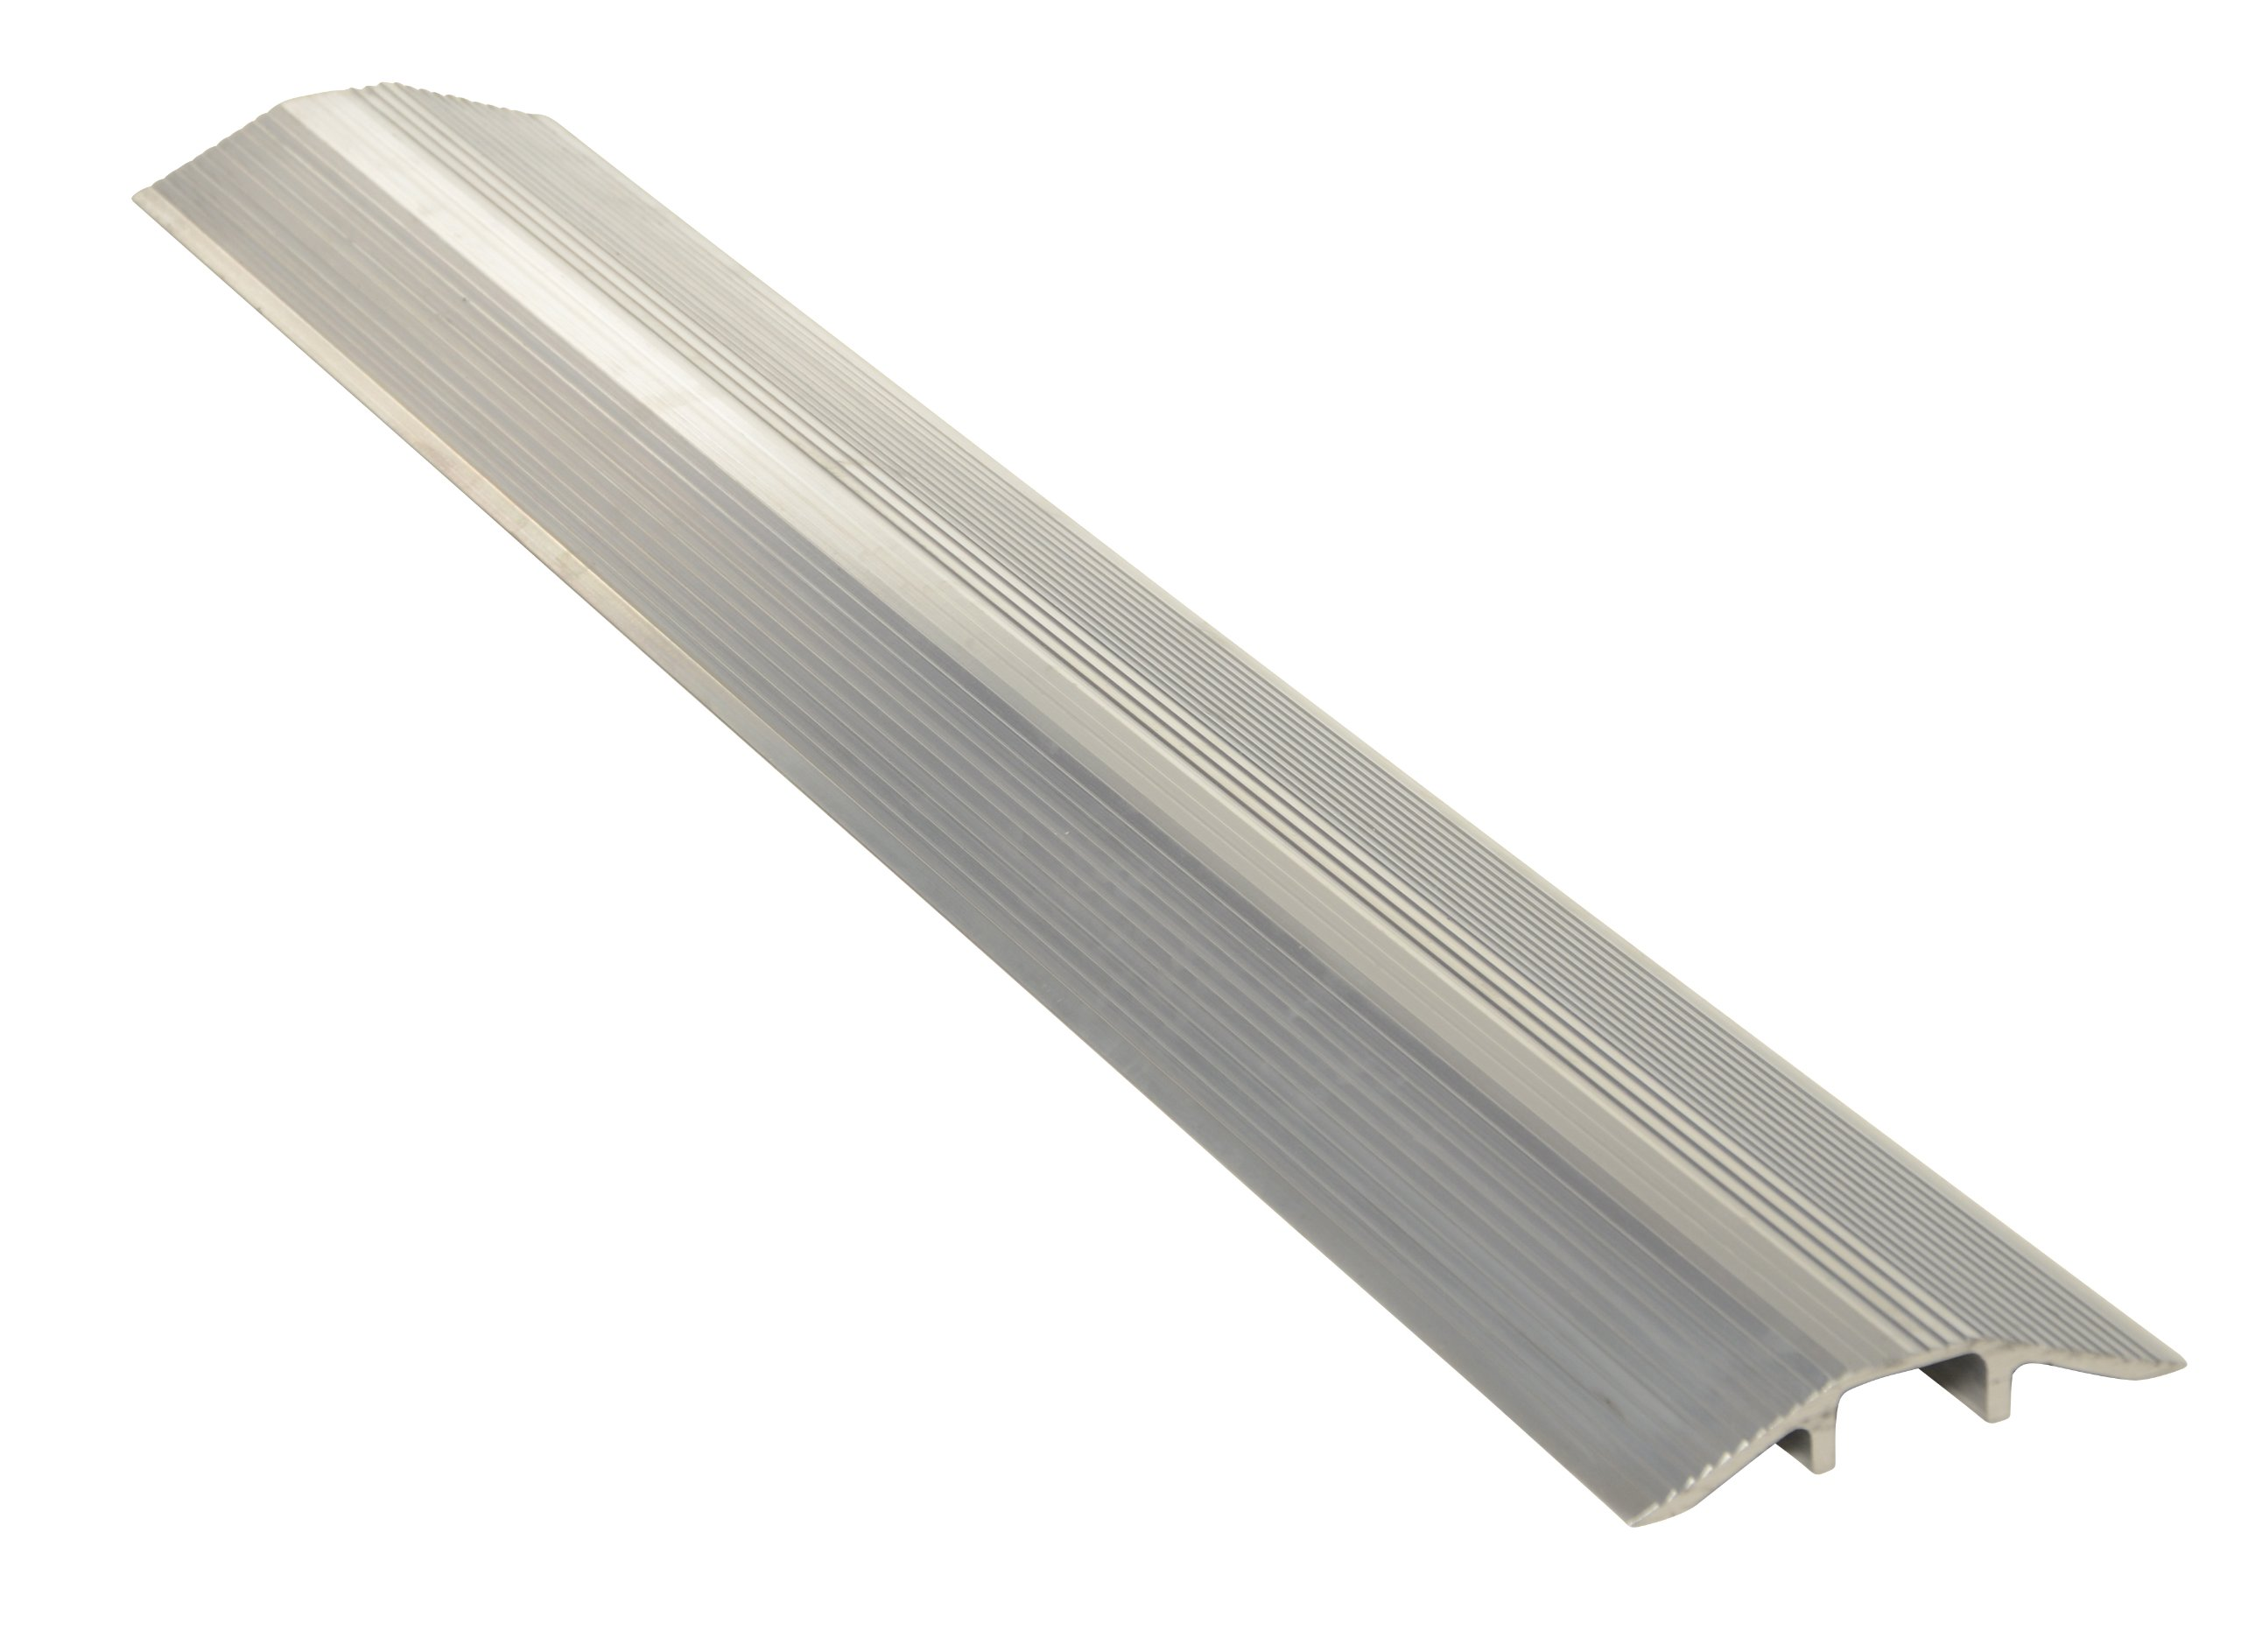 Vestil LHCR-60 Aluminum Extruded Hose and Crossover , 10000 lbs Capacity, 60'' Length x 9-1/8'' Width x 1-1/2'' Height